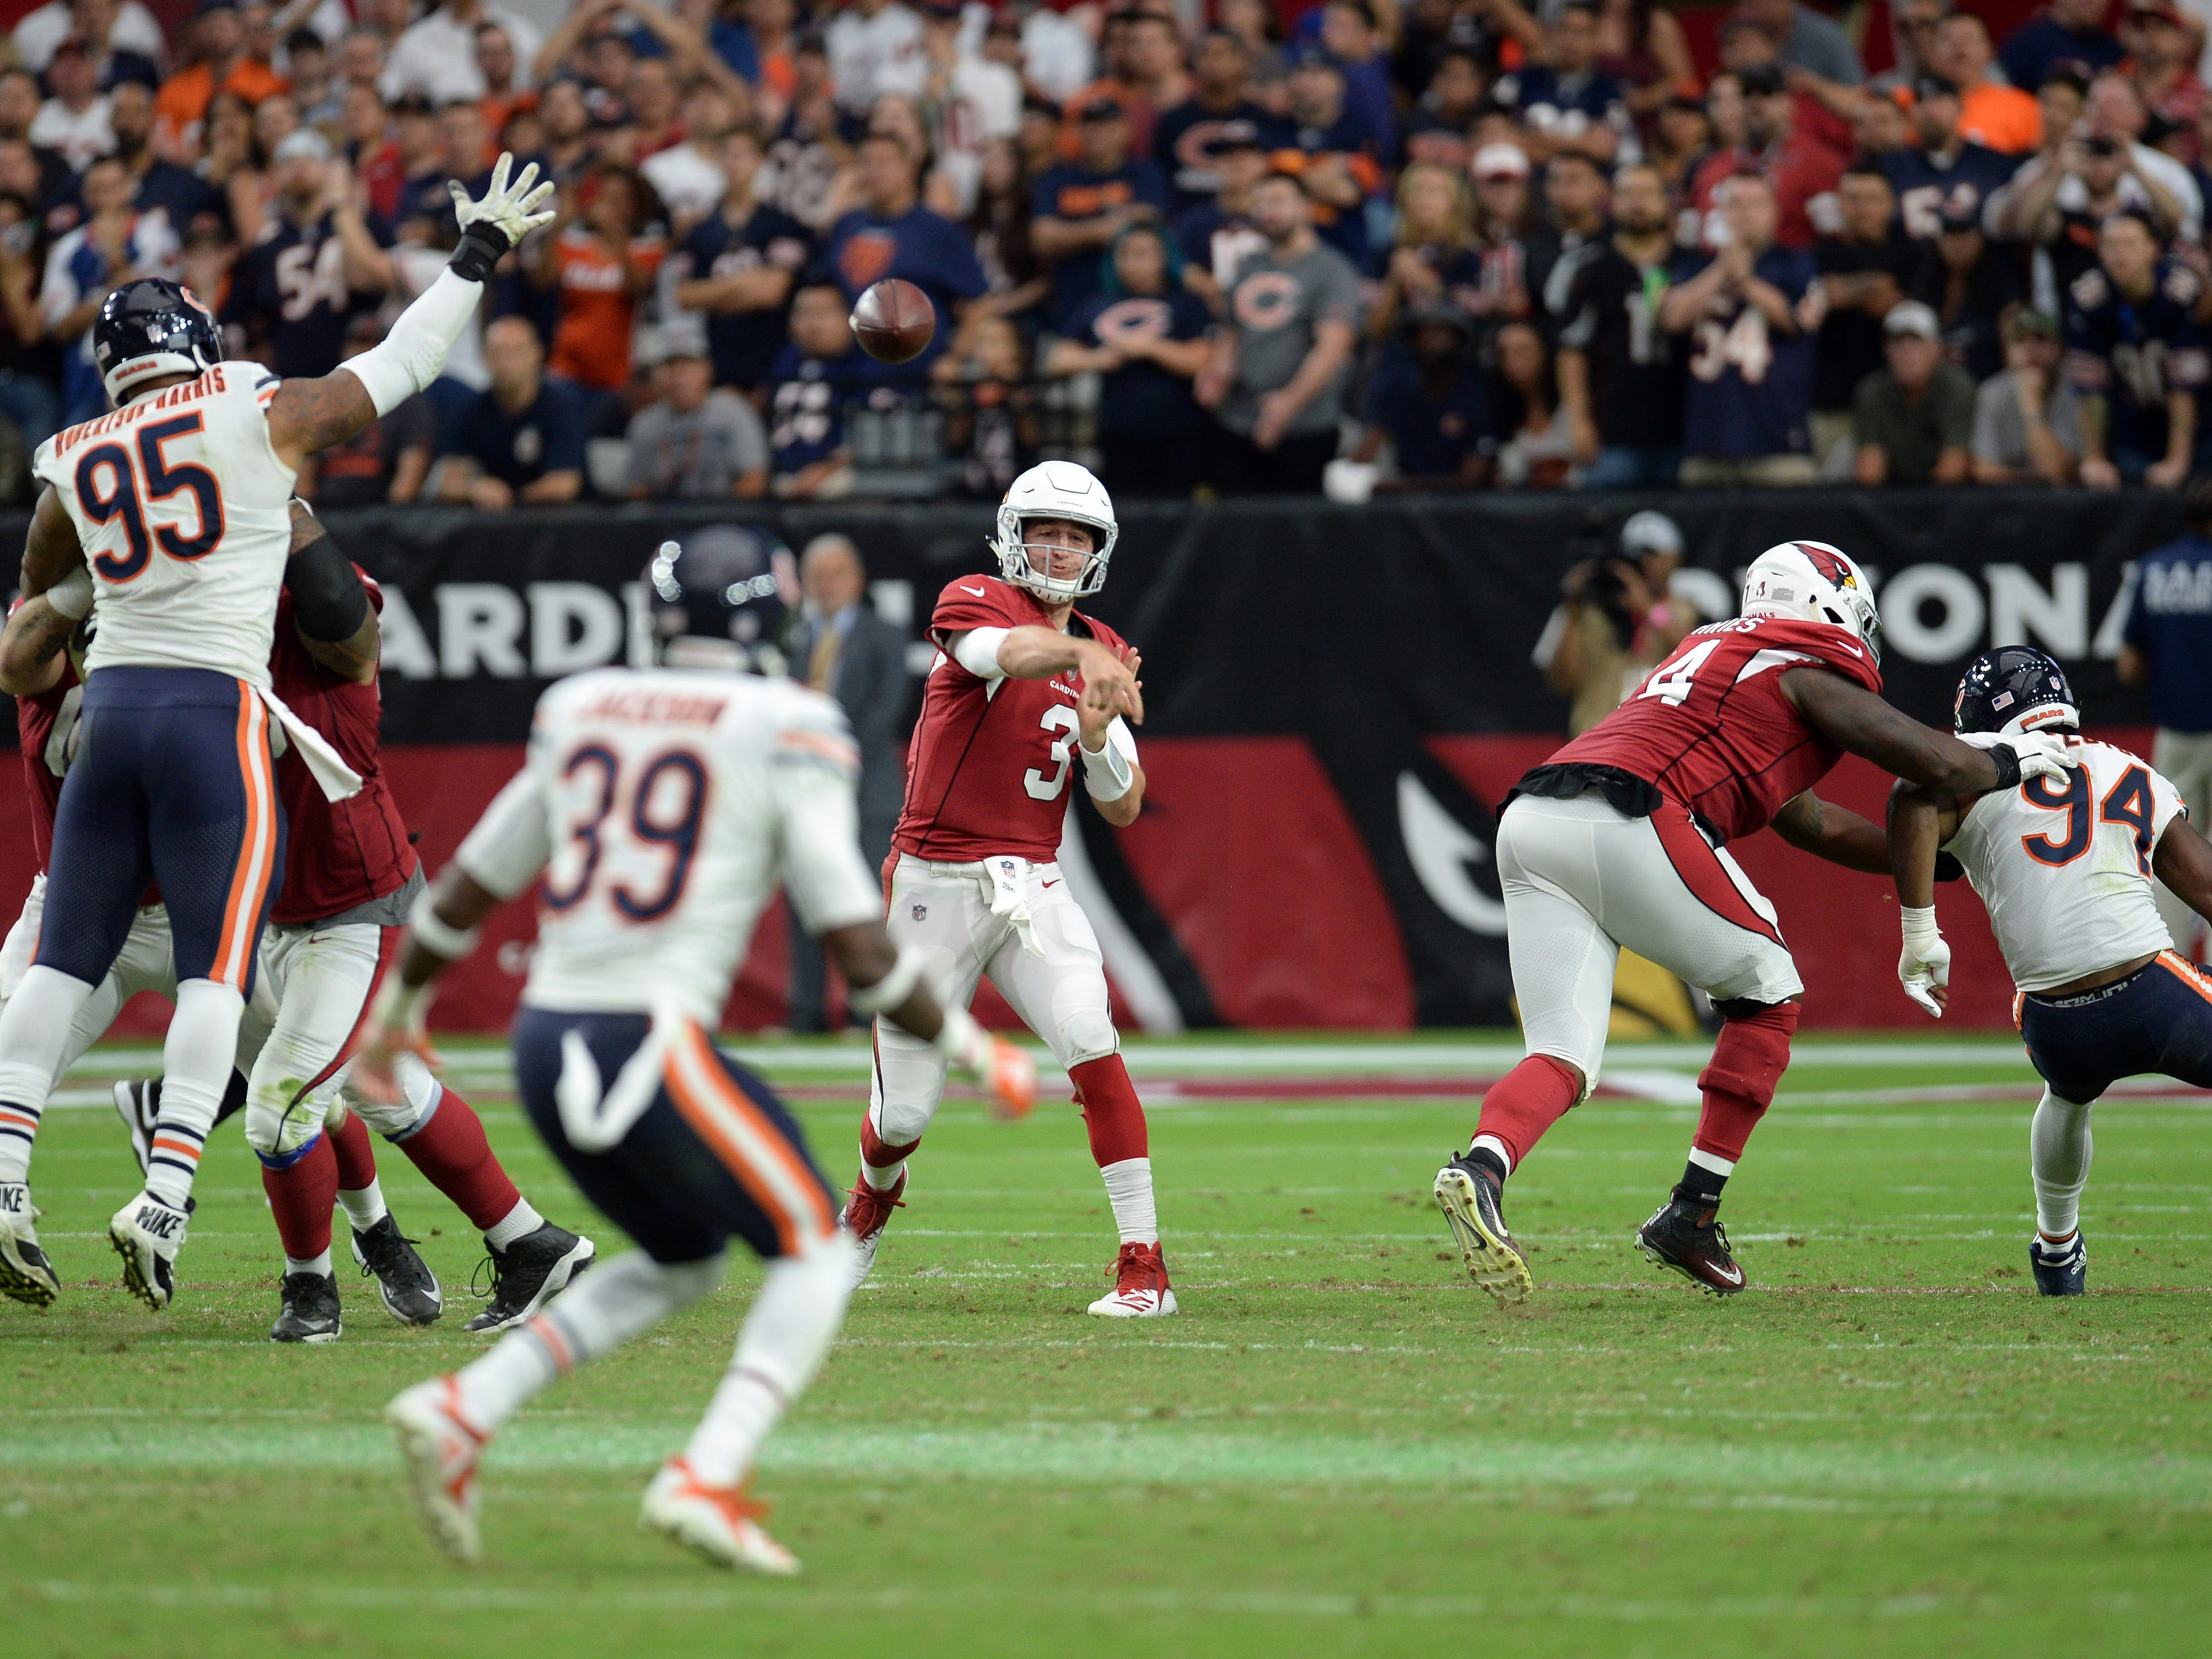 Sep 23, 2018; Glendale, AZ, USA; Arizona Cardinals quarterback Josh Rosen (3) throws a pass against the Chicago Bears during the second half at State Farm Stadium. Mandatory Credit: Joe Camporeale-USA TODAY Sports